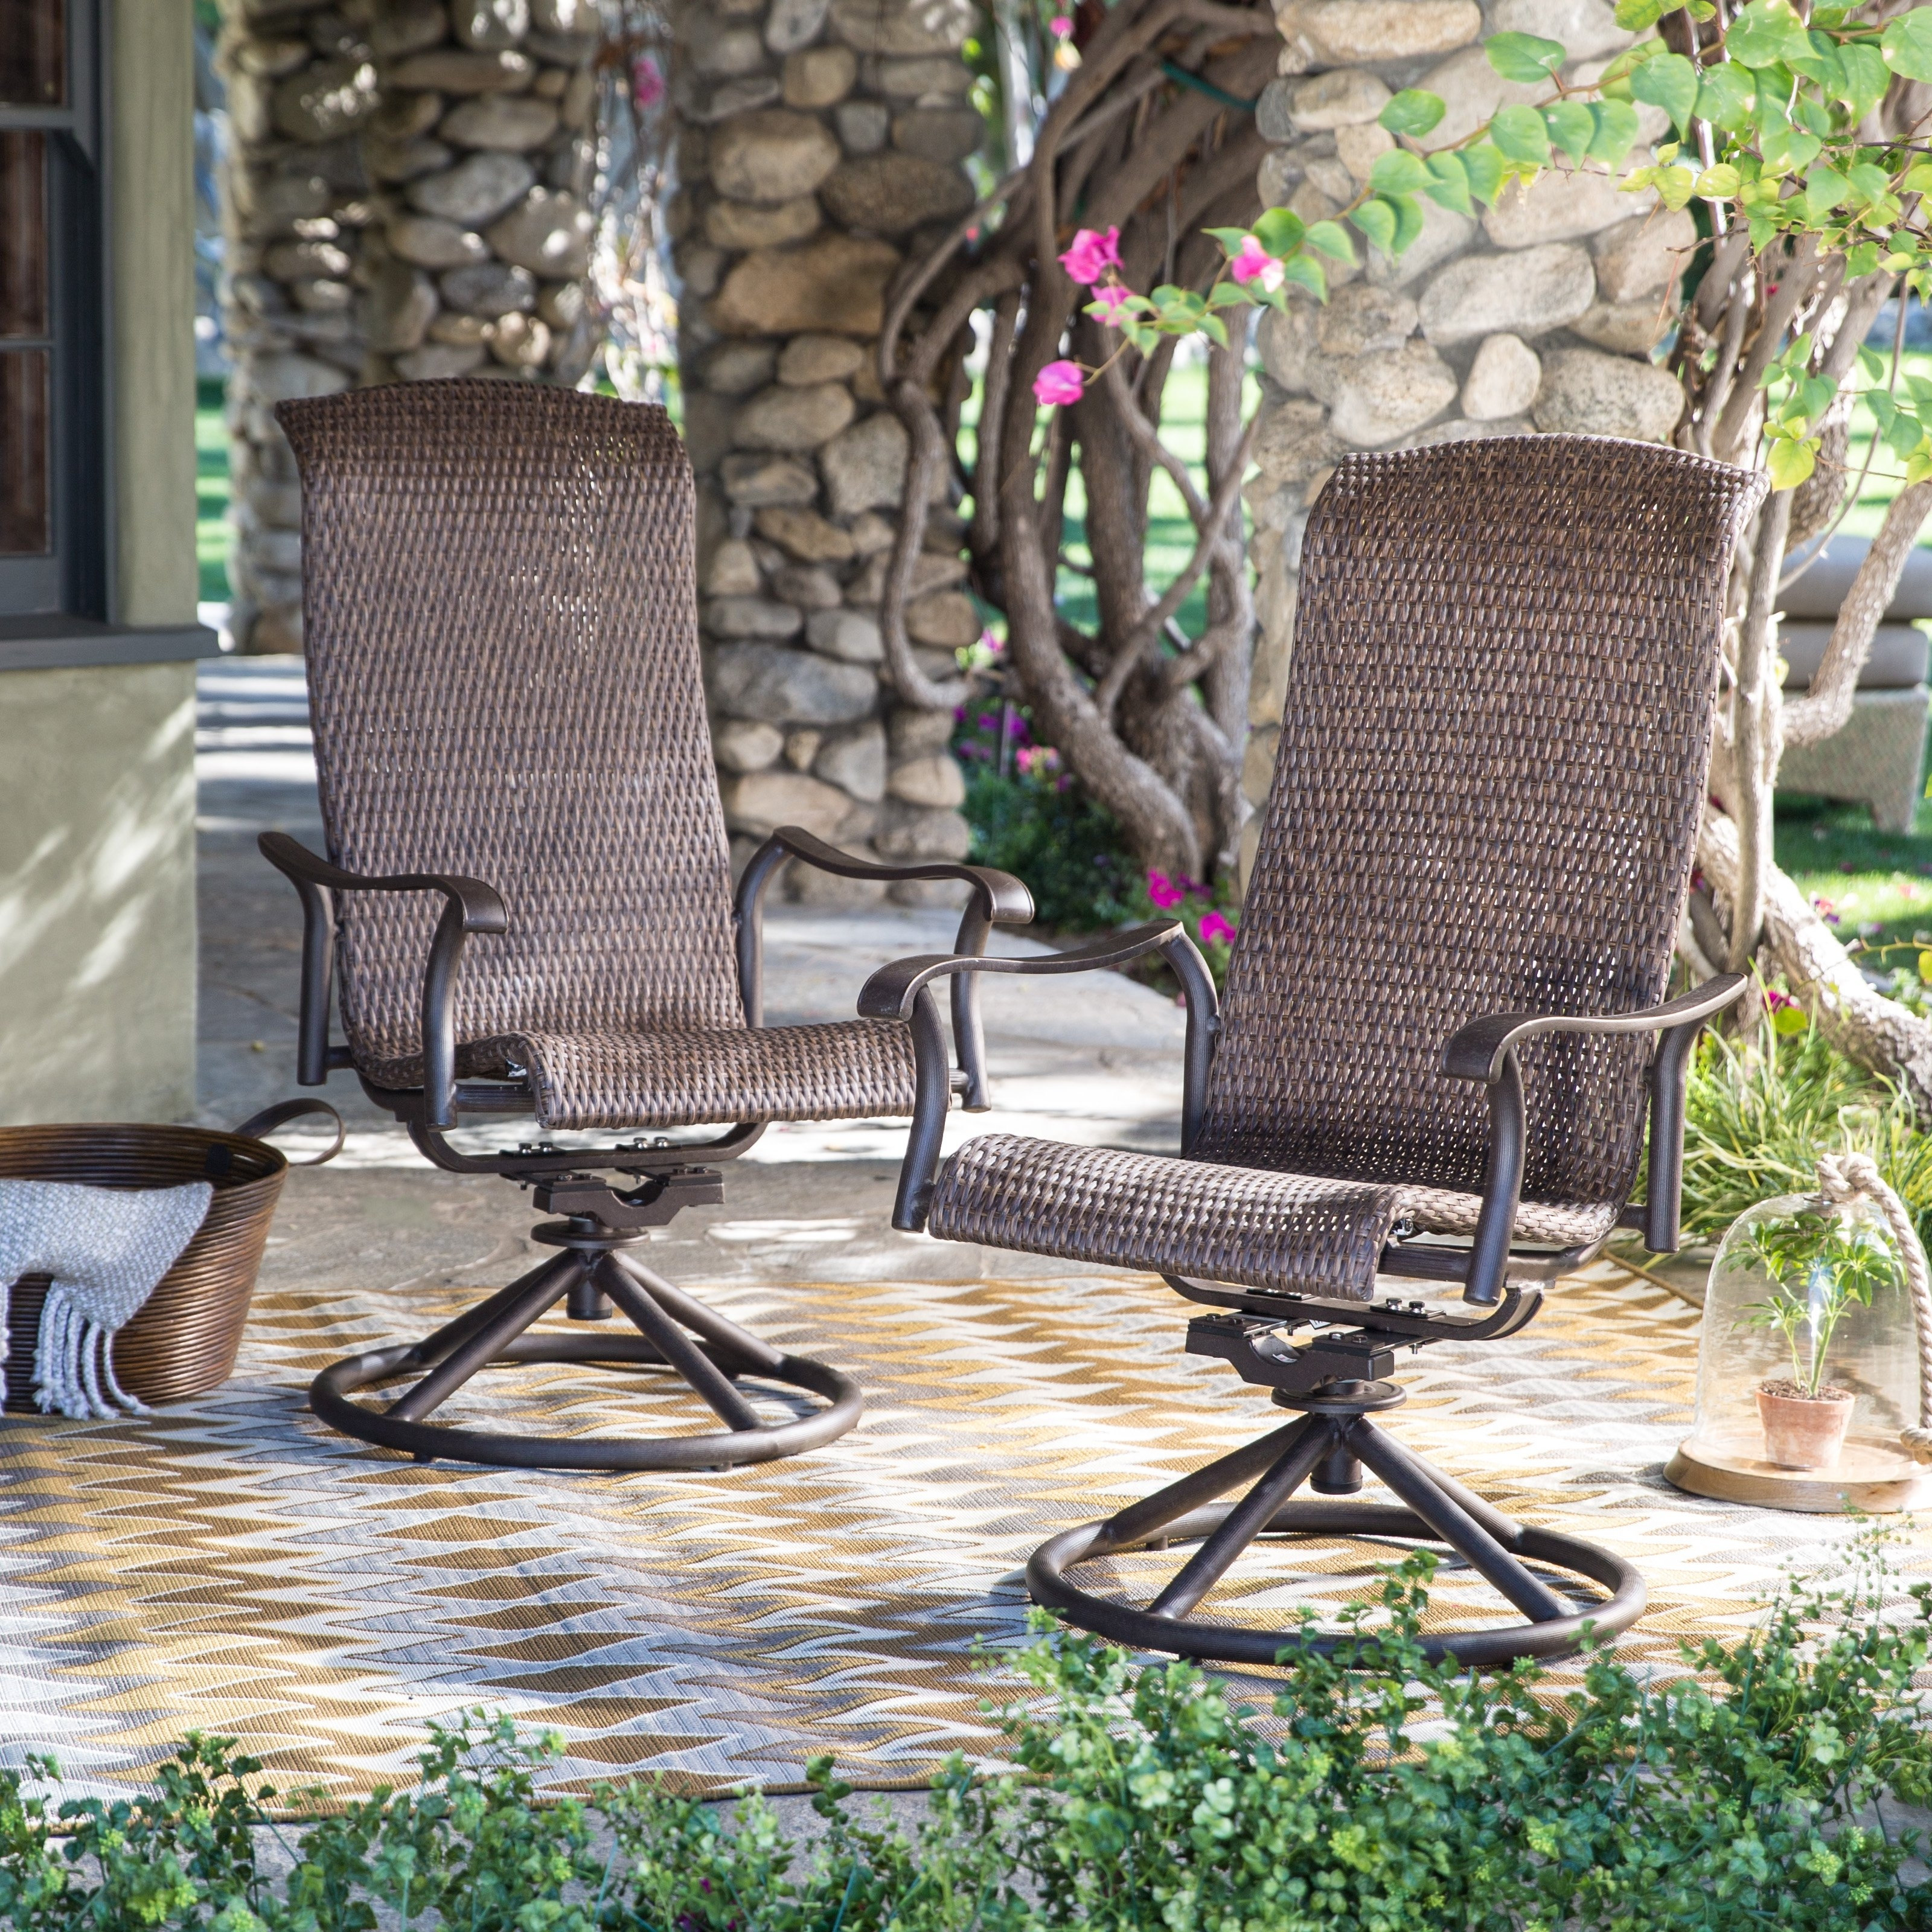 Well Known Wicker Rocking Chairs And Ottoman Intended For Outdoor Wicker Swivel Rocking Chair – Outdoor Designs (View 12 of 15)